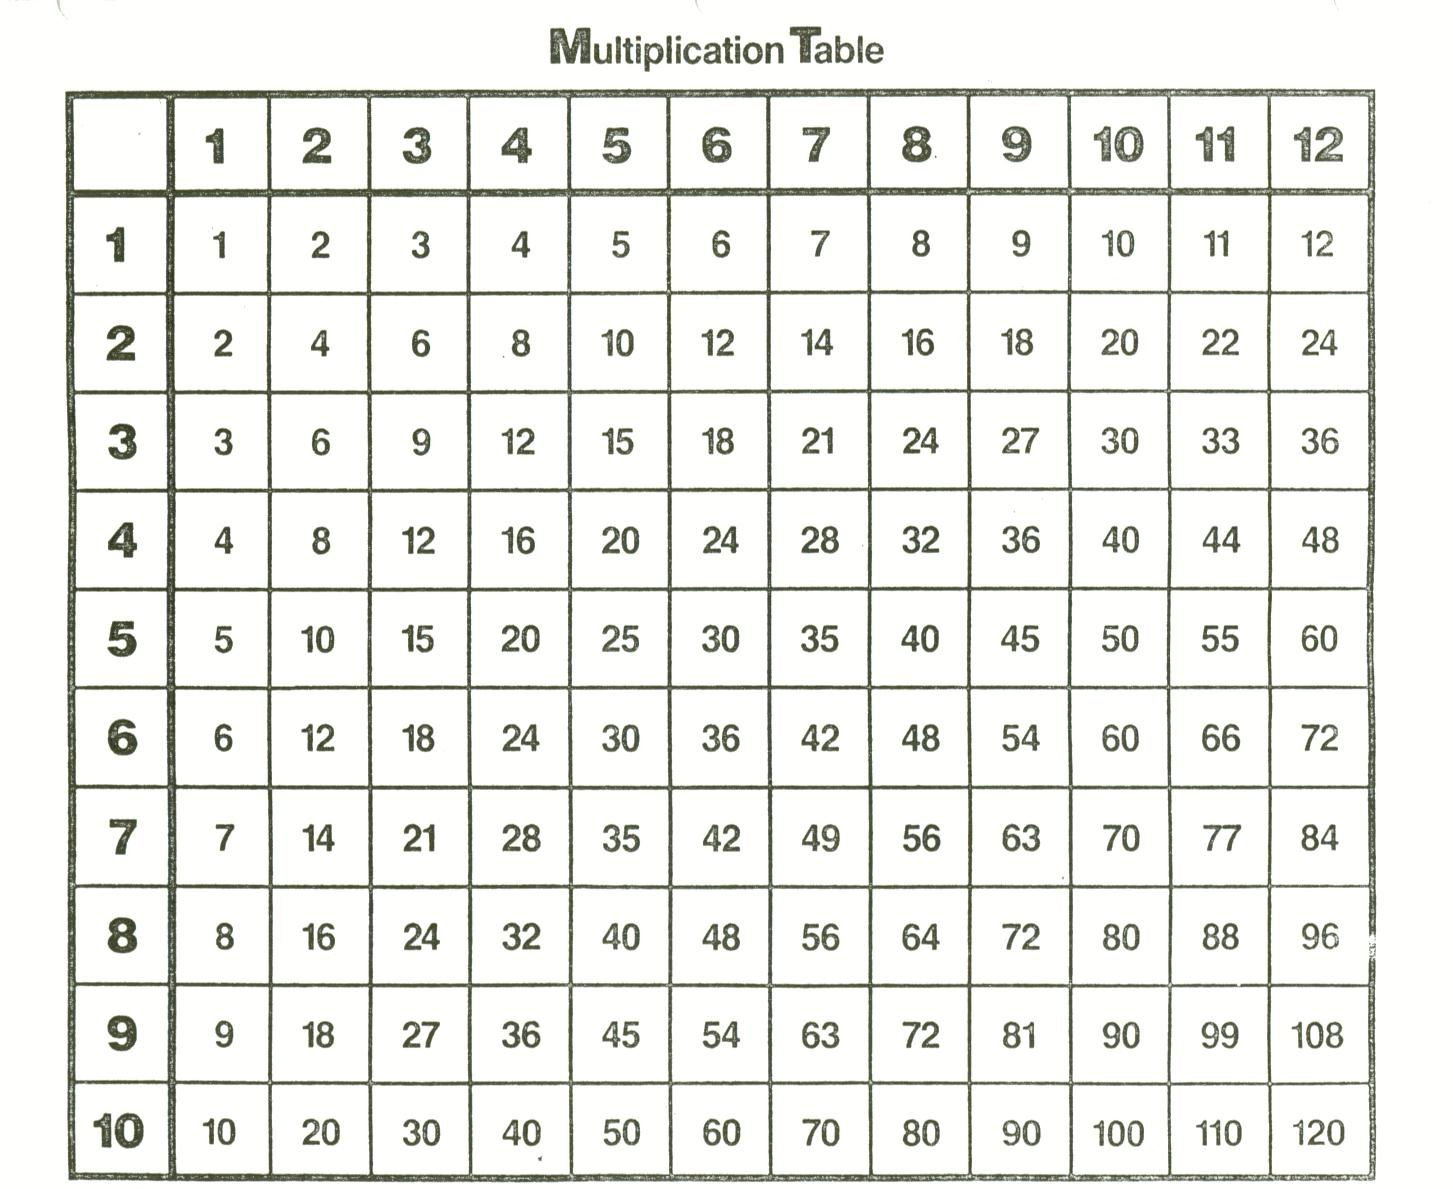 Miss kahrimanis 39 s blog more fraction action and decimal for Multiplication table to 99